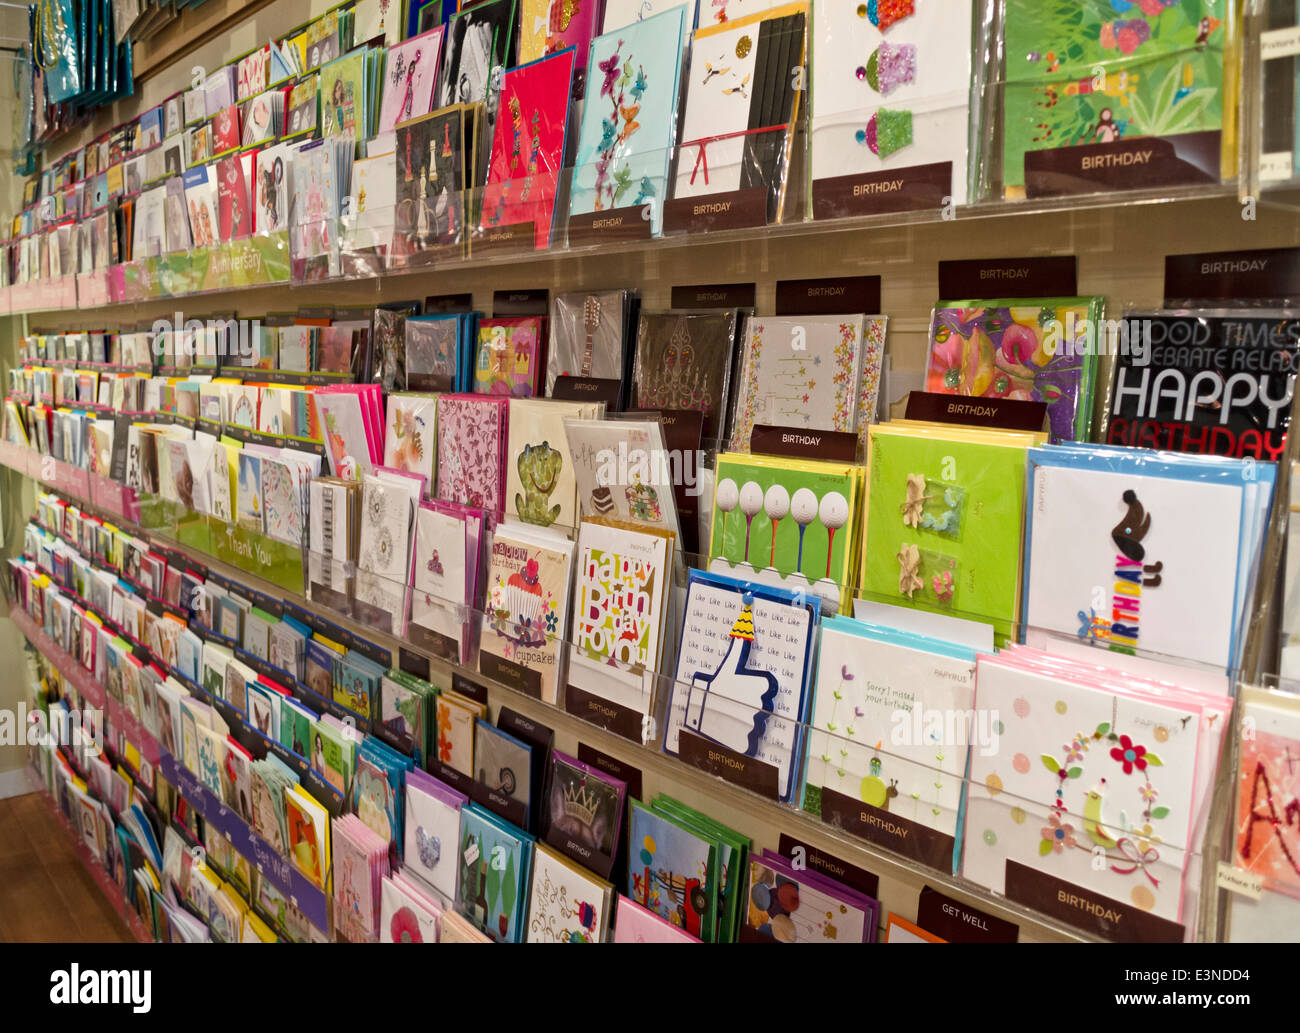 Rows of greeting cards and birthday cards on display in a card rows of greeting cards and birthday cards on display in a card store birthday cards at the forefront kristyandbryce Choice Image